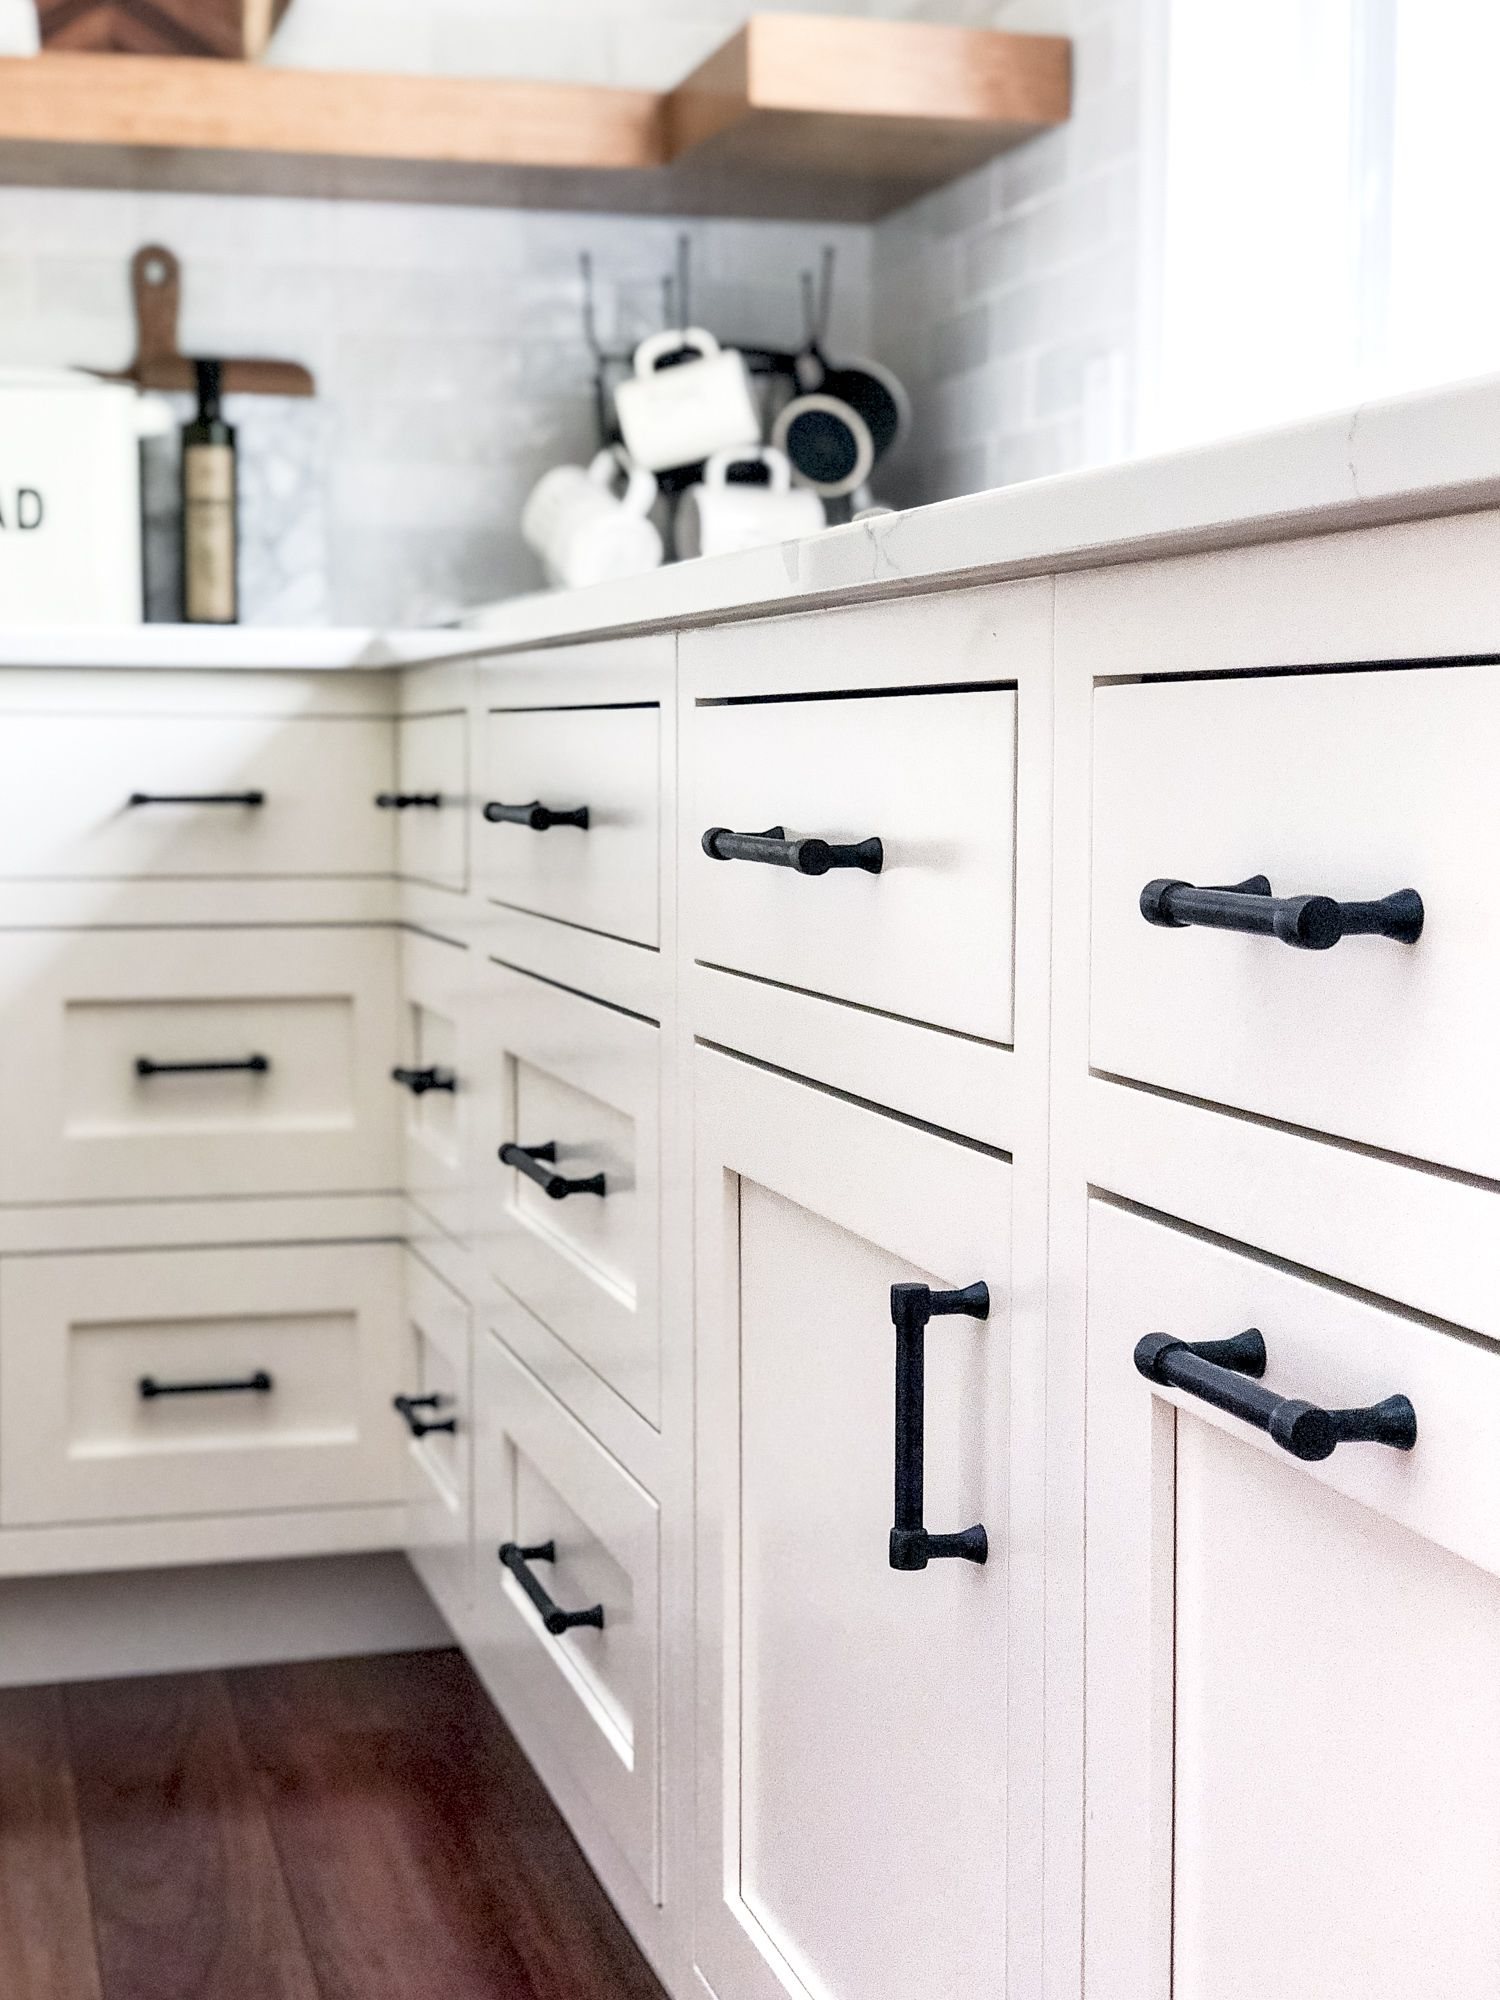 Designing a Modern Farmhouse Kitchen with a Black Farmhouse Sink